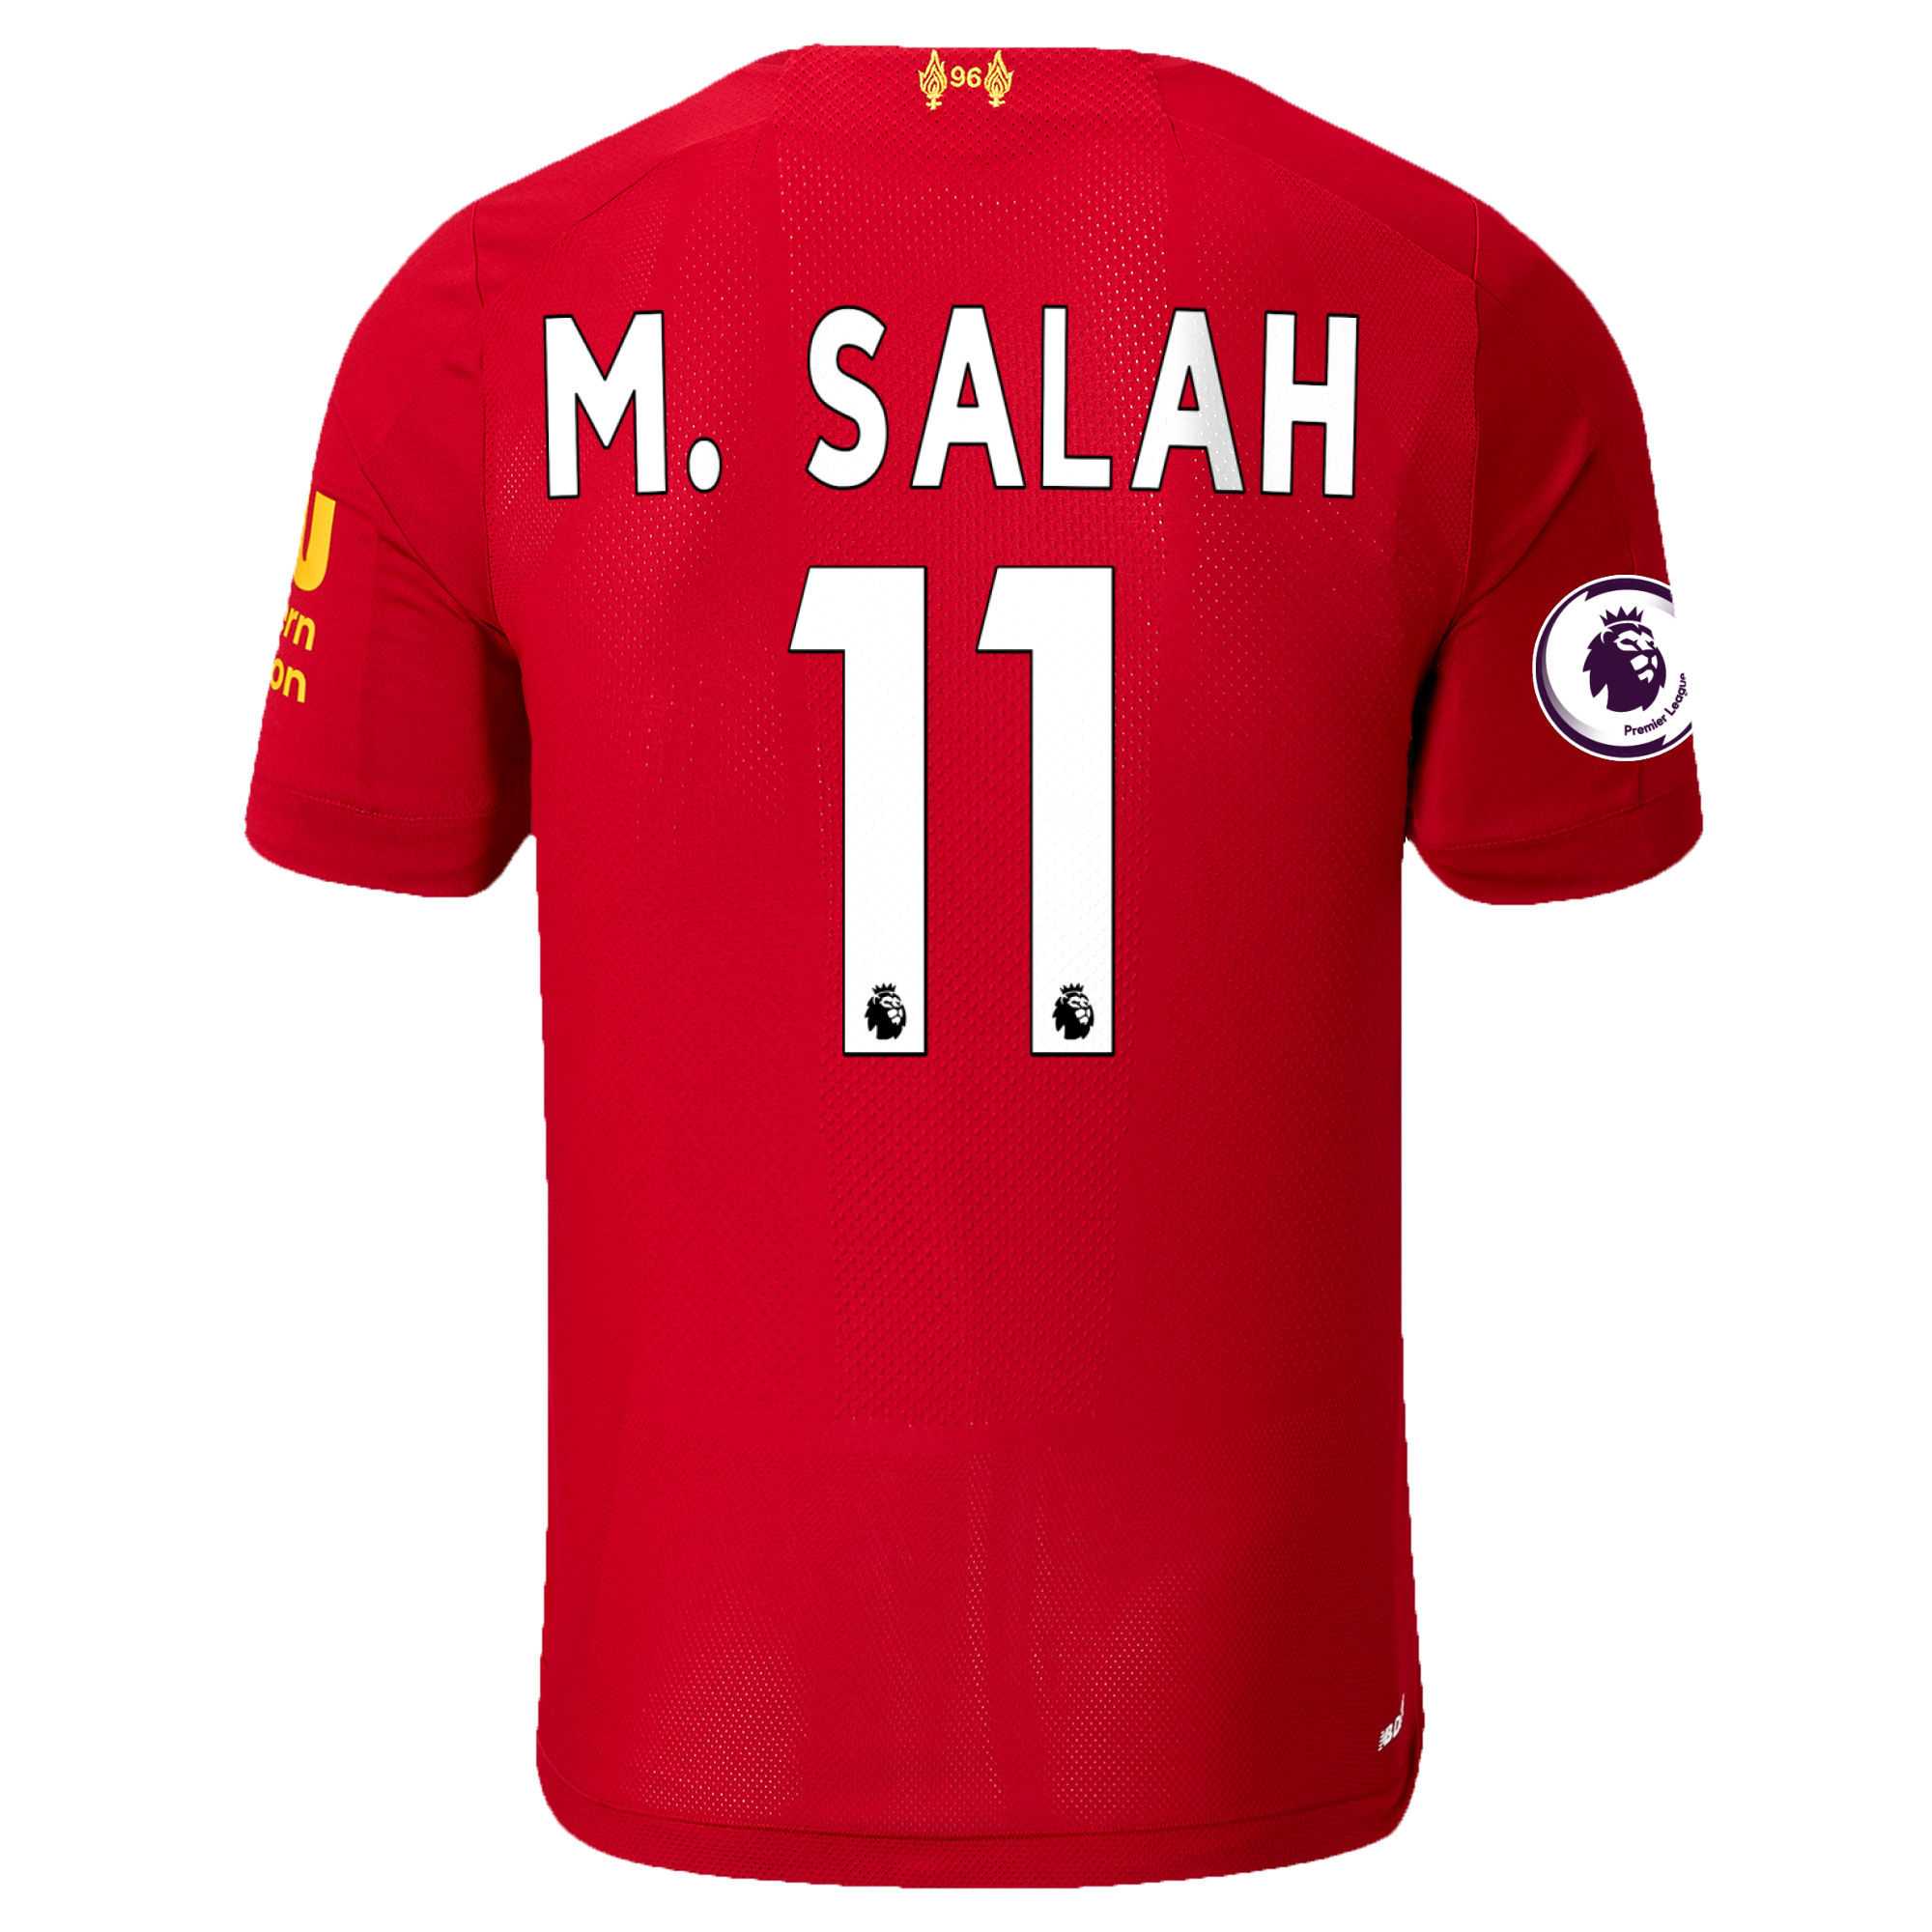 online retailer 26e35 ae380 Mohamed Salah Liverpool New Balance 2019/20 Home Authentic Player Jersey -  Red